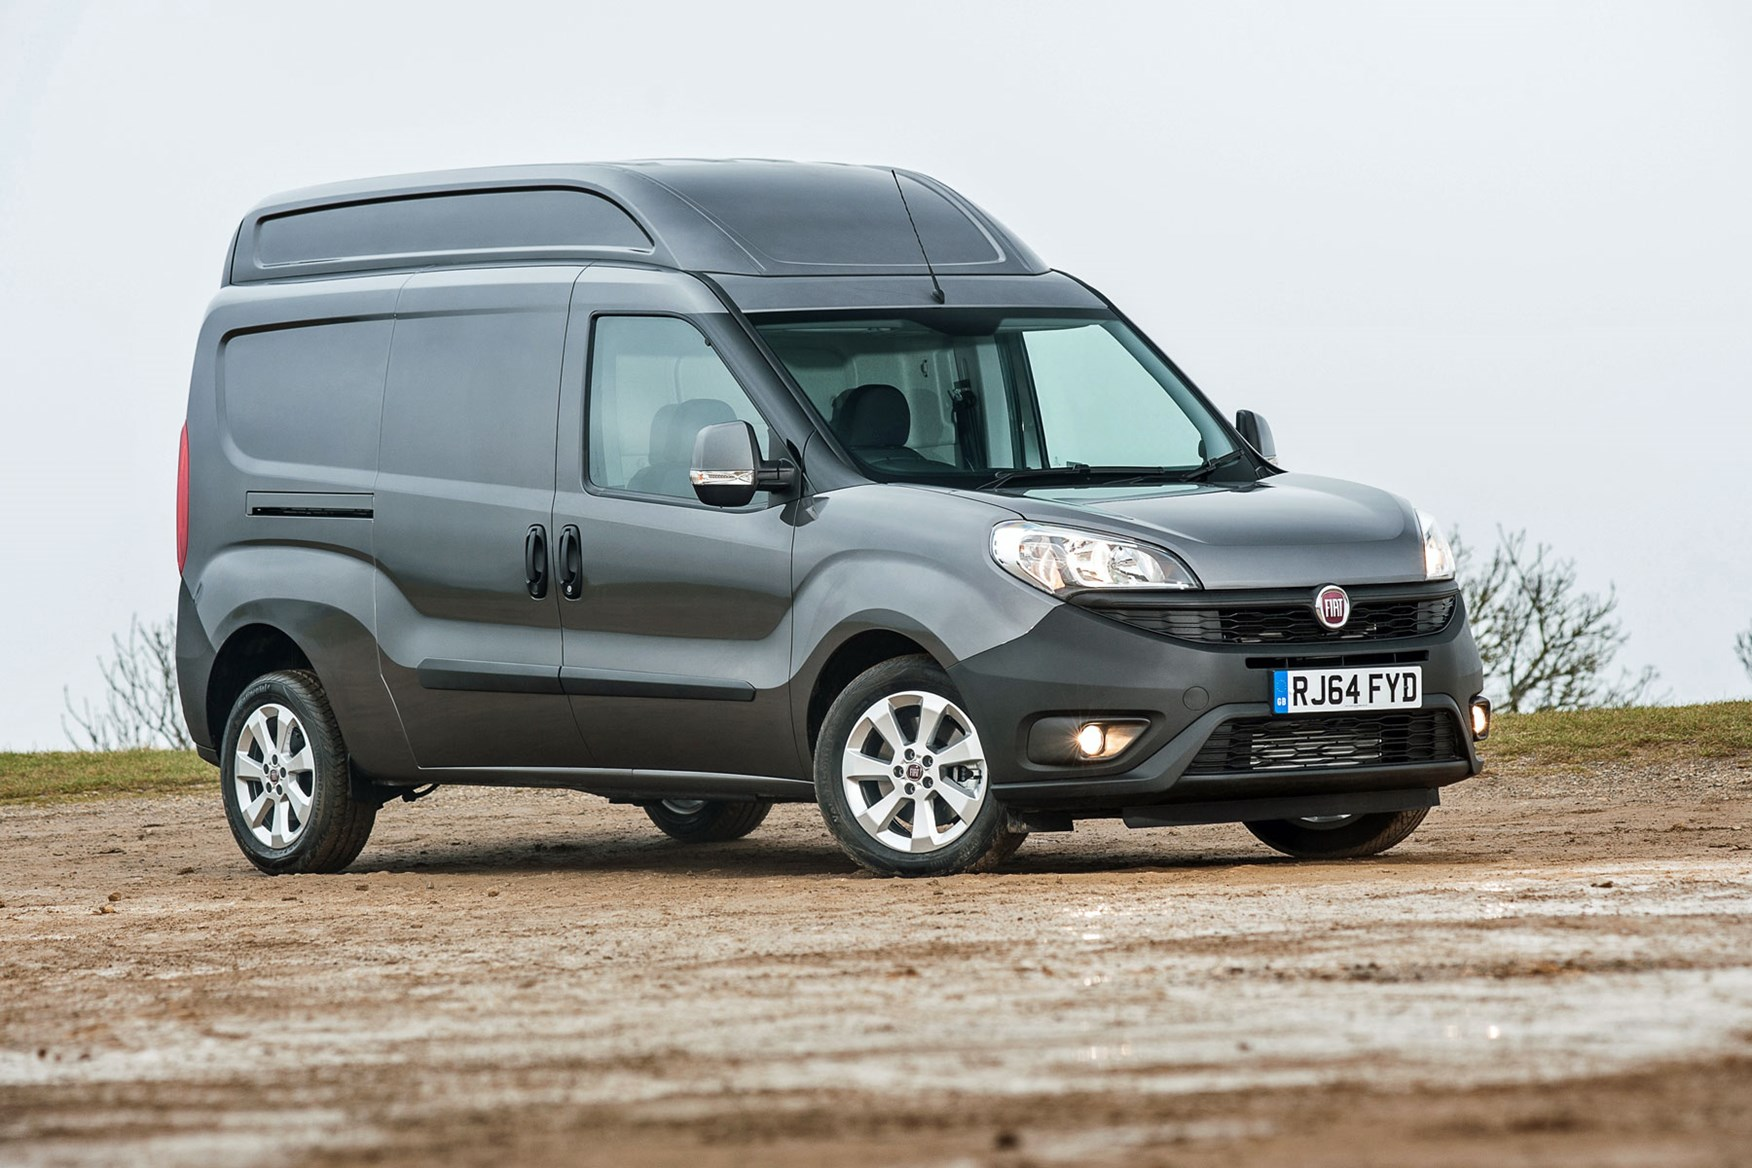 Fiat Doblo review - XL, front view, dark grey, facelift model